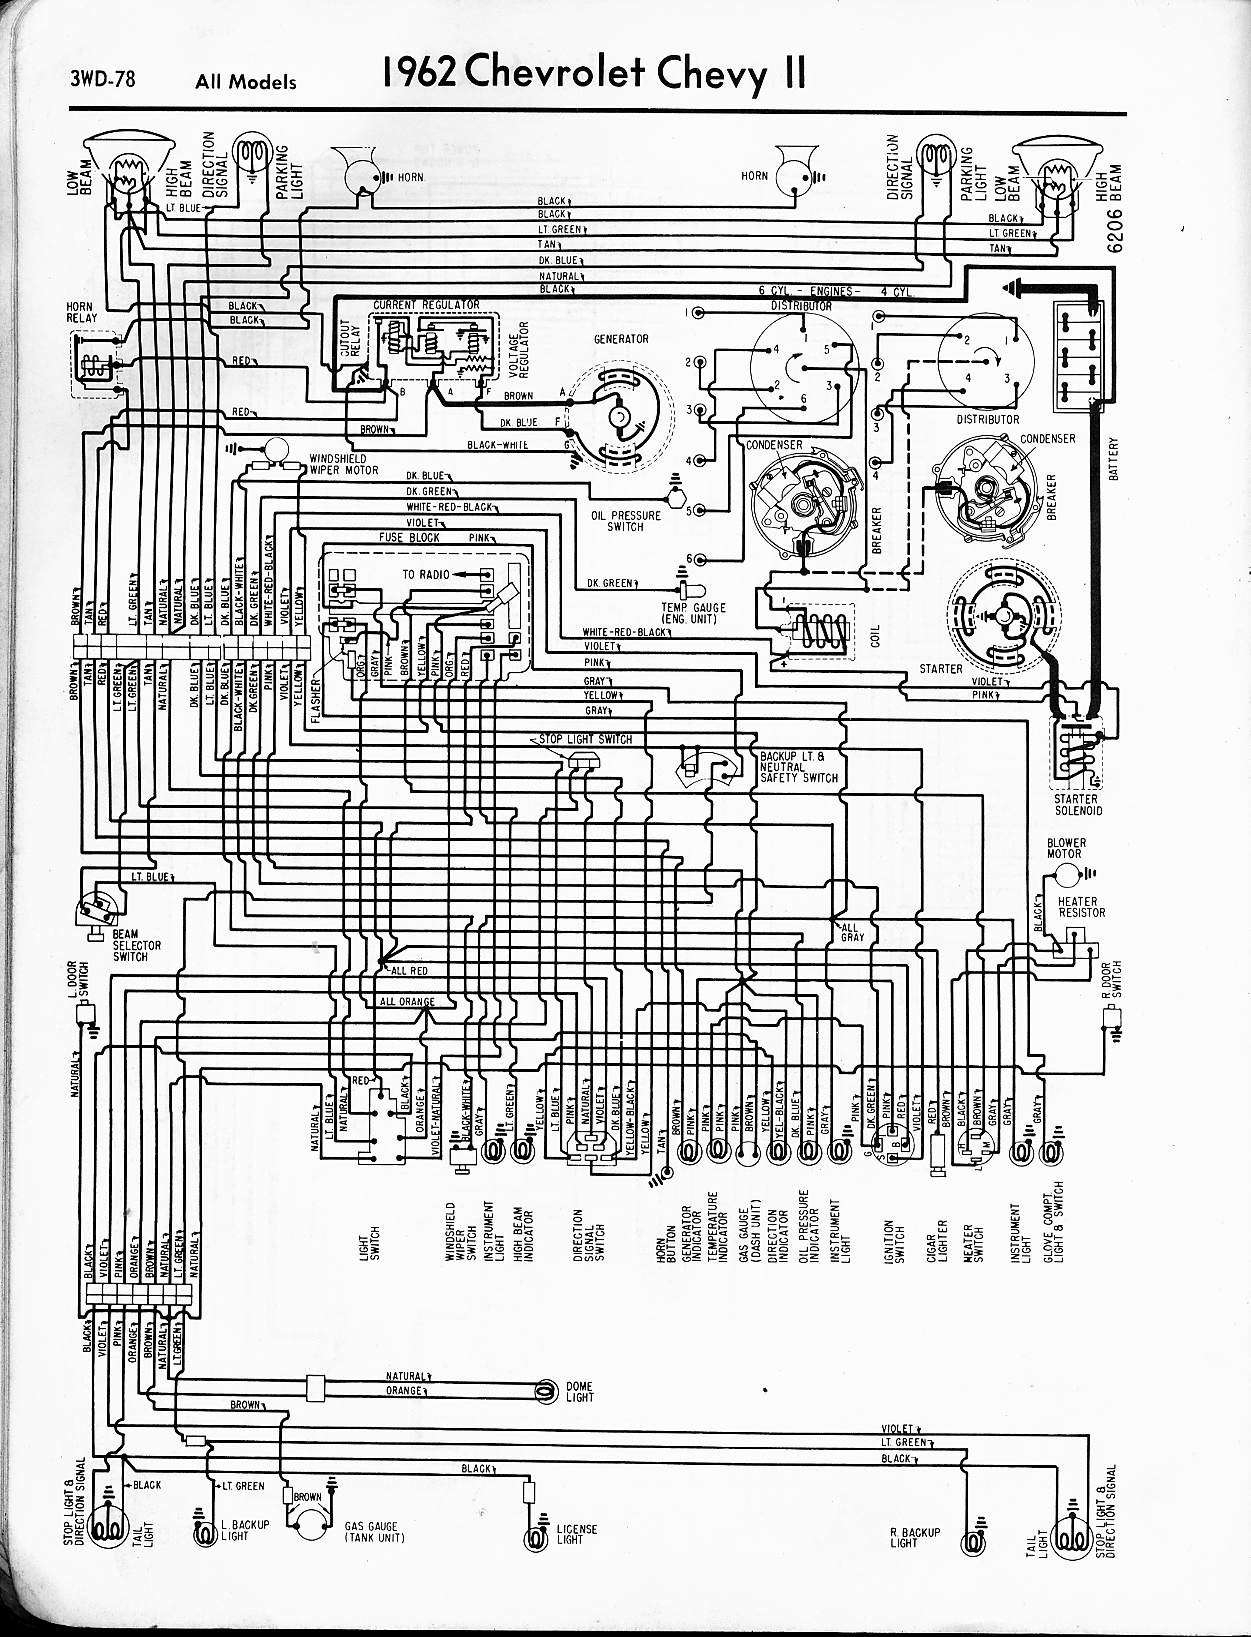 1970 Chevy Camaro Wiring Harness | Wiring Diagram 2019 on 1996 jeep cherokee country wiring diagram, 70 chevy neutral safety switch, 70 chevy 454 engine, 70 chevy steering column diagram, 70 chevy ignition system, 57 ford wiring diagram, 06 impala starter wiring diagram, 66 impala wiring diagram, 89 mustang wiring diagram, 96 corvette wiring diagram, 66 chevelle wiring diagram, camaro wiring diagram, 69 nova wiring diagram, 70 chevy fuel tank, 64 riviera wiring diagram,